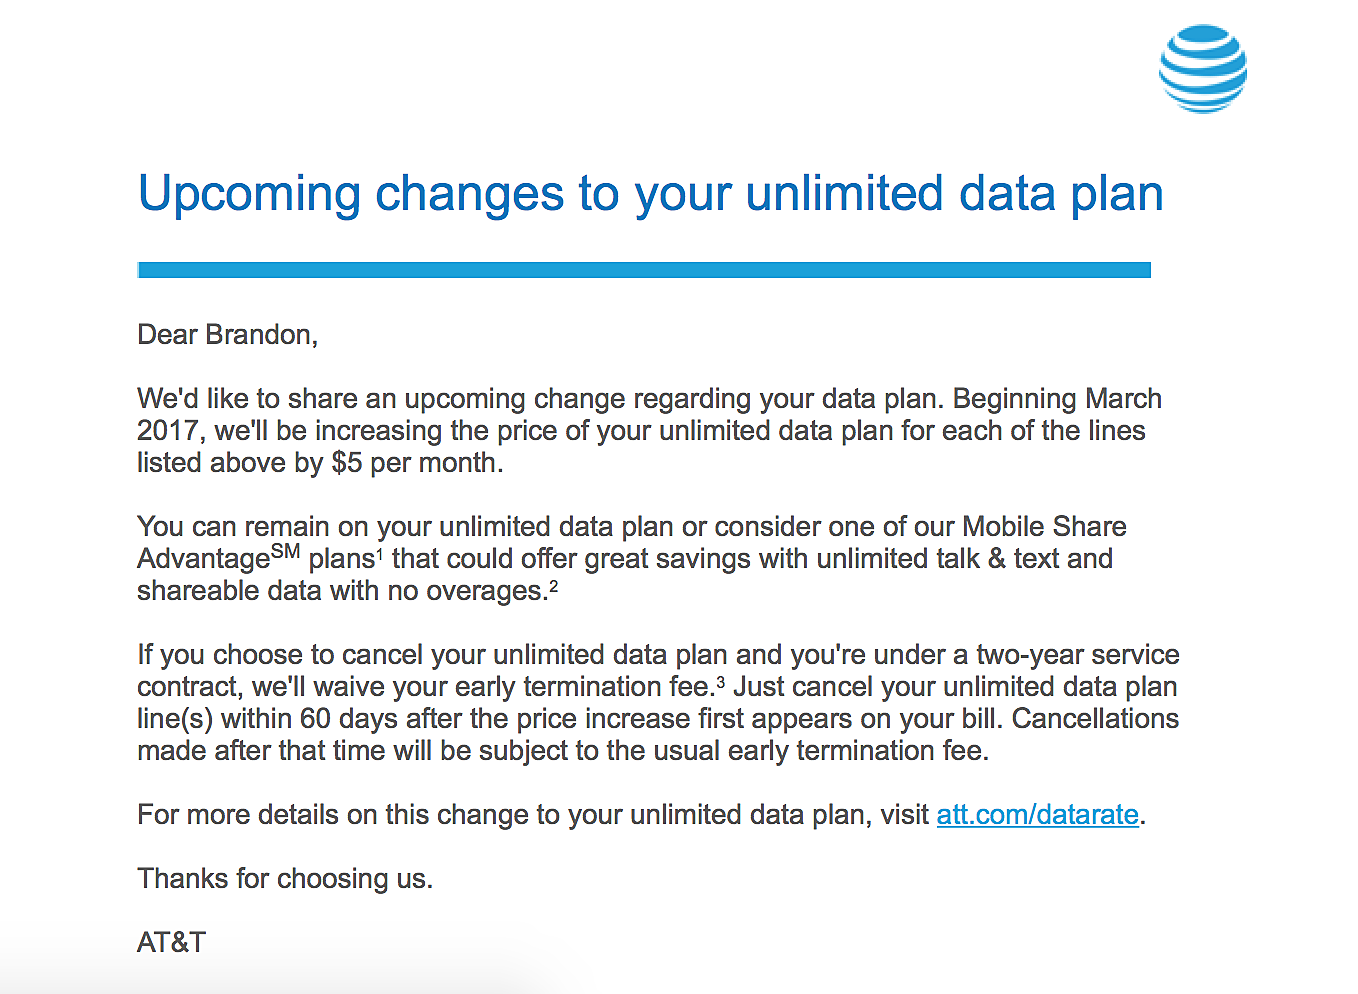 at&t raising price on grandfathered unlimited data plan